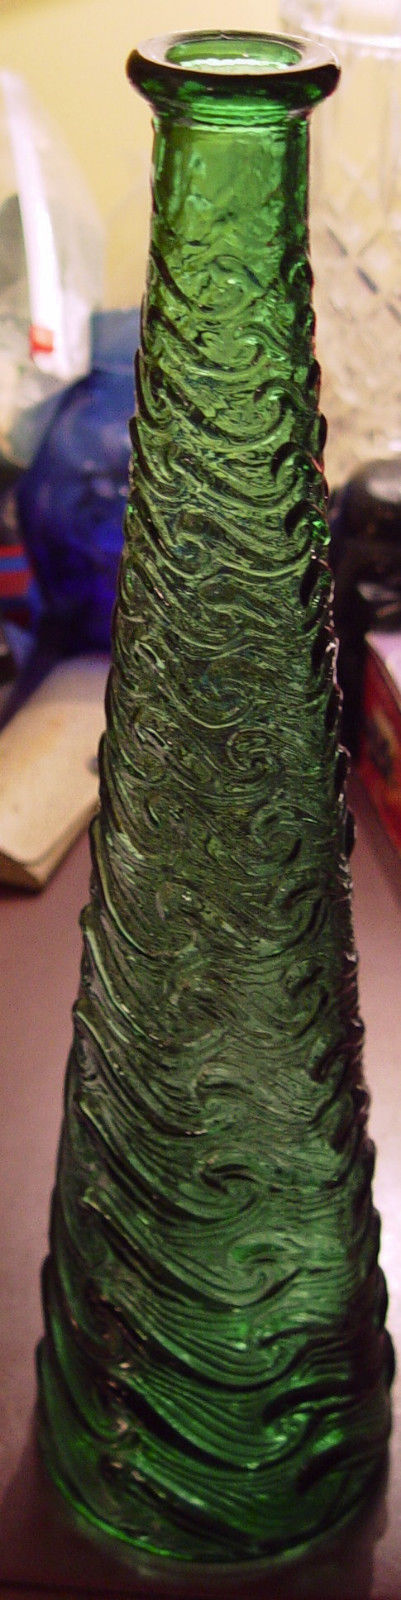 Tall Decorative Green Bottle / Vase 15 ½ Inches